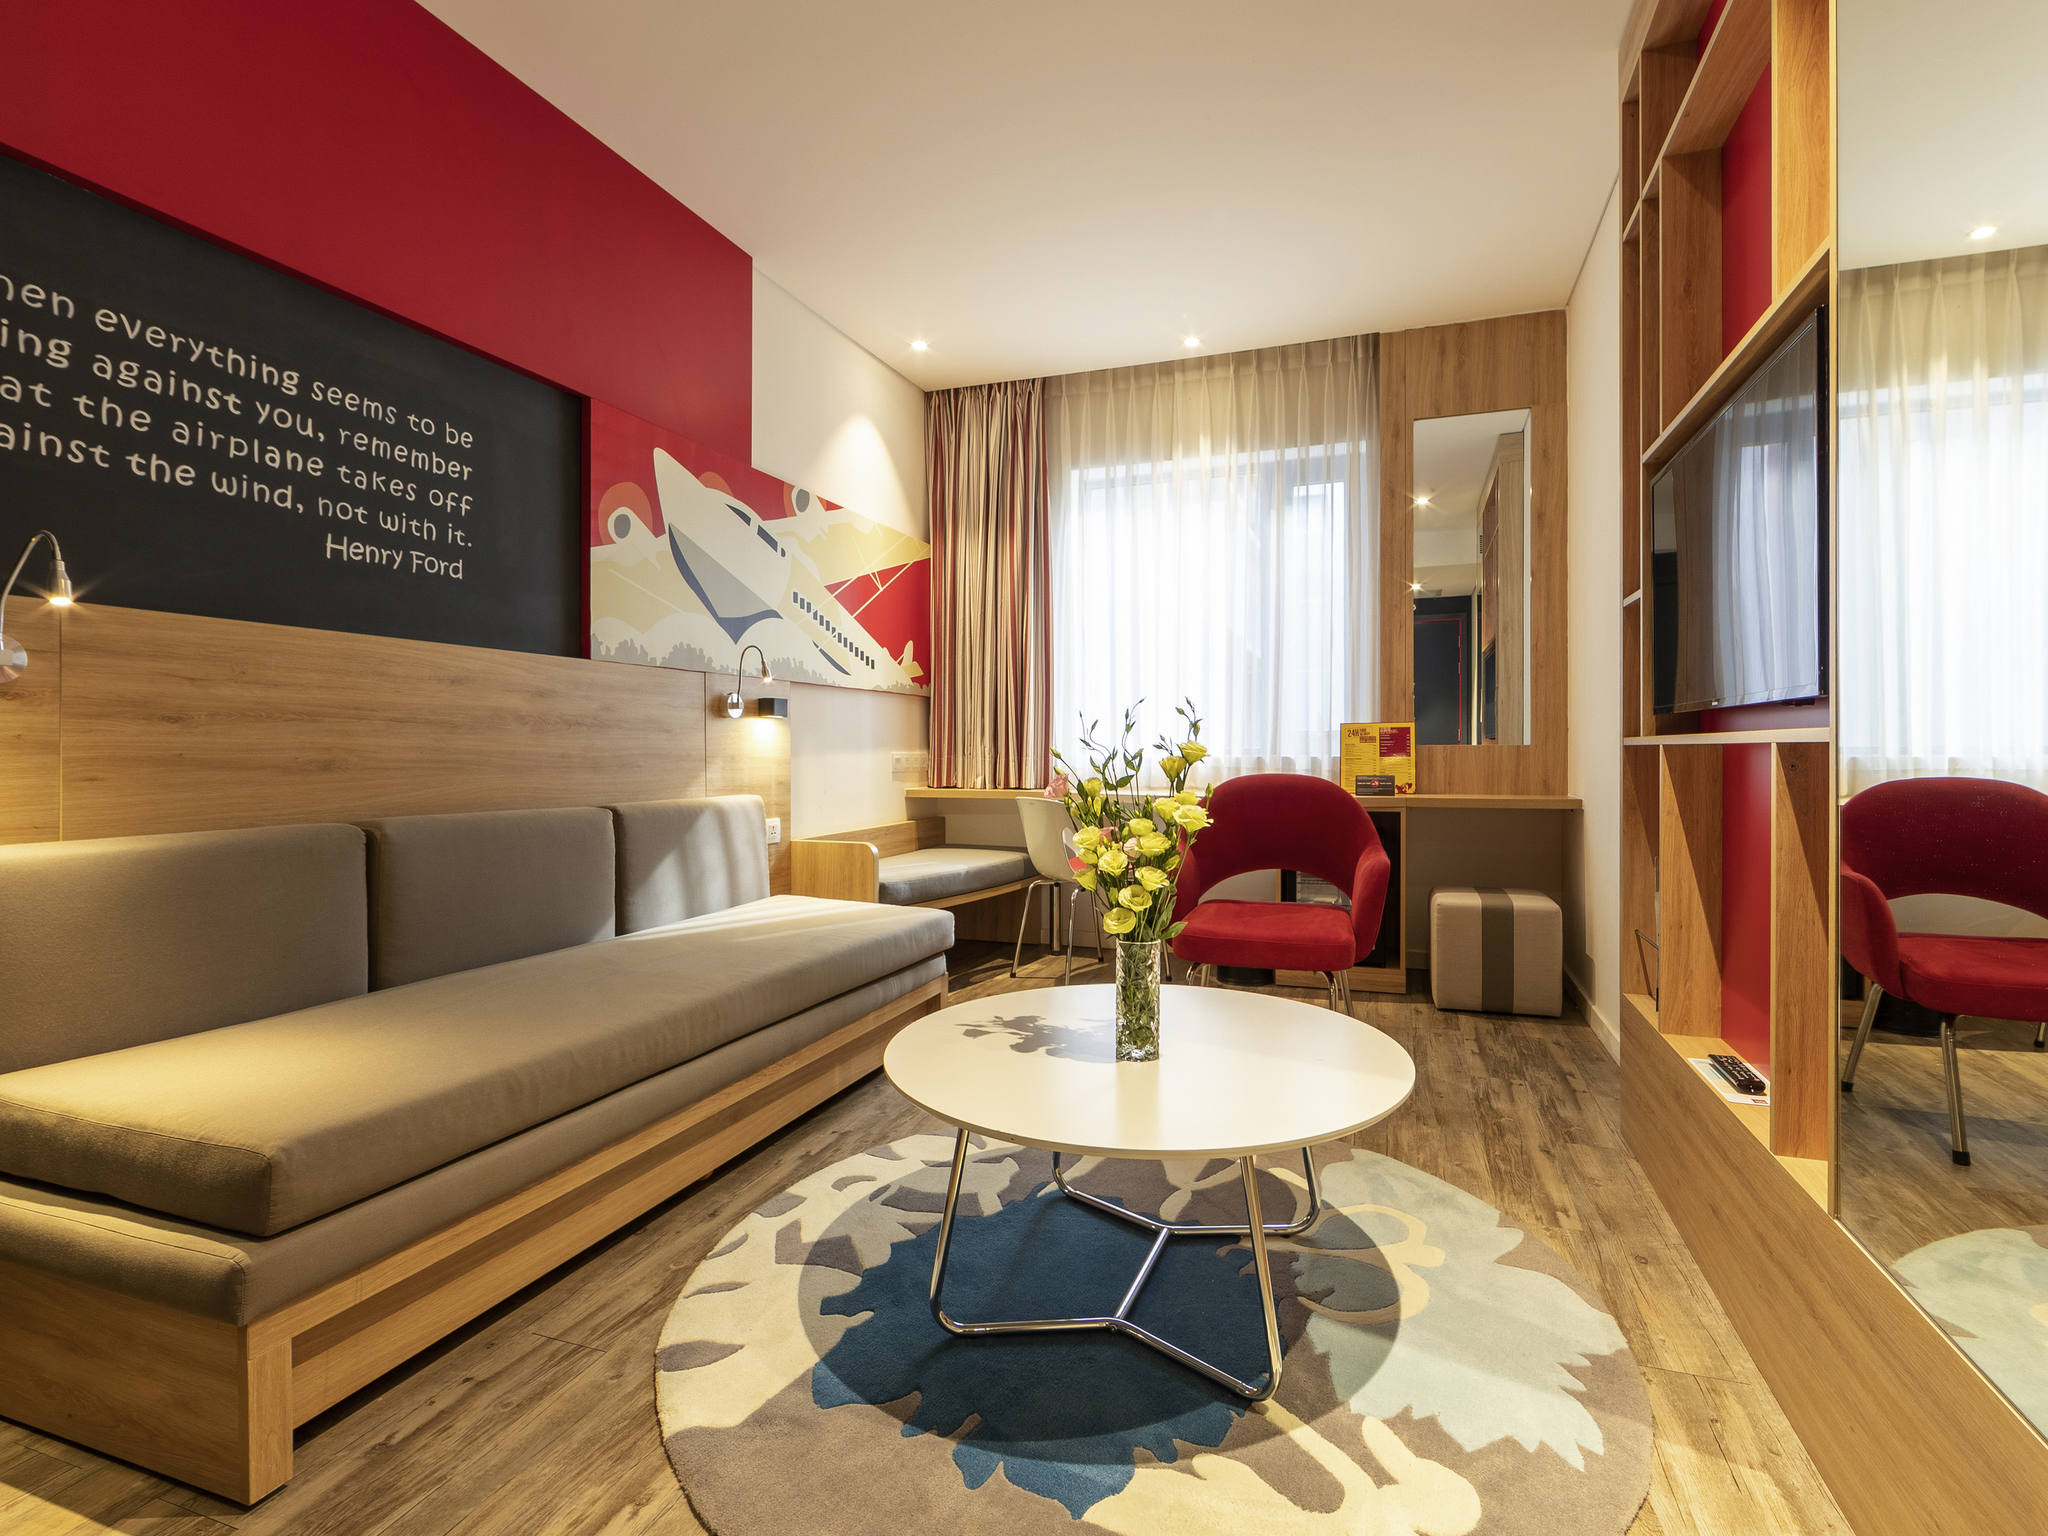 Airport Bed Hotel Hotel In Ho Chi Minh Ibis Saigon Airport